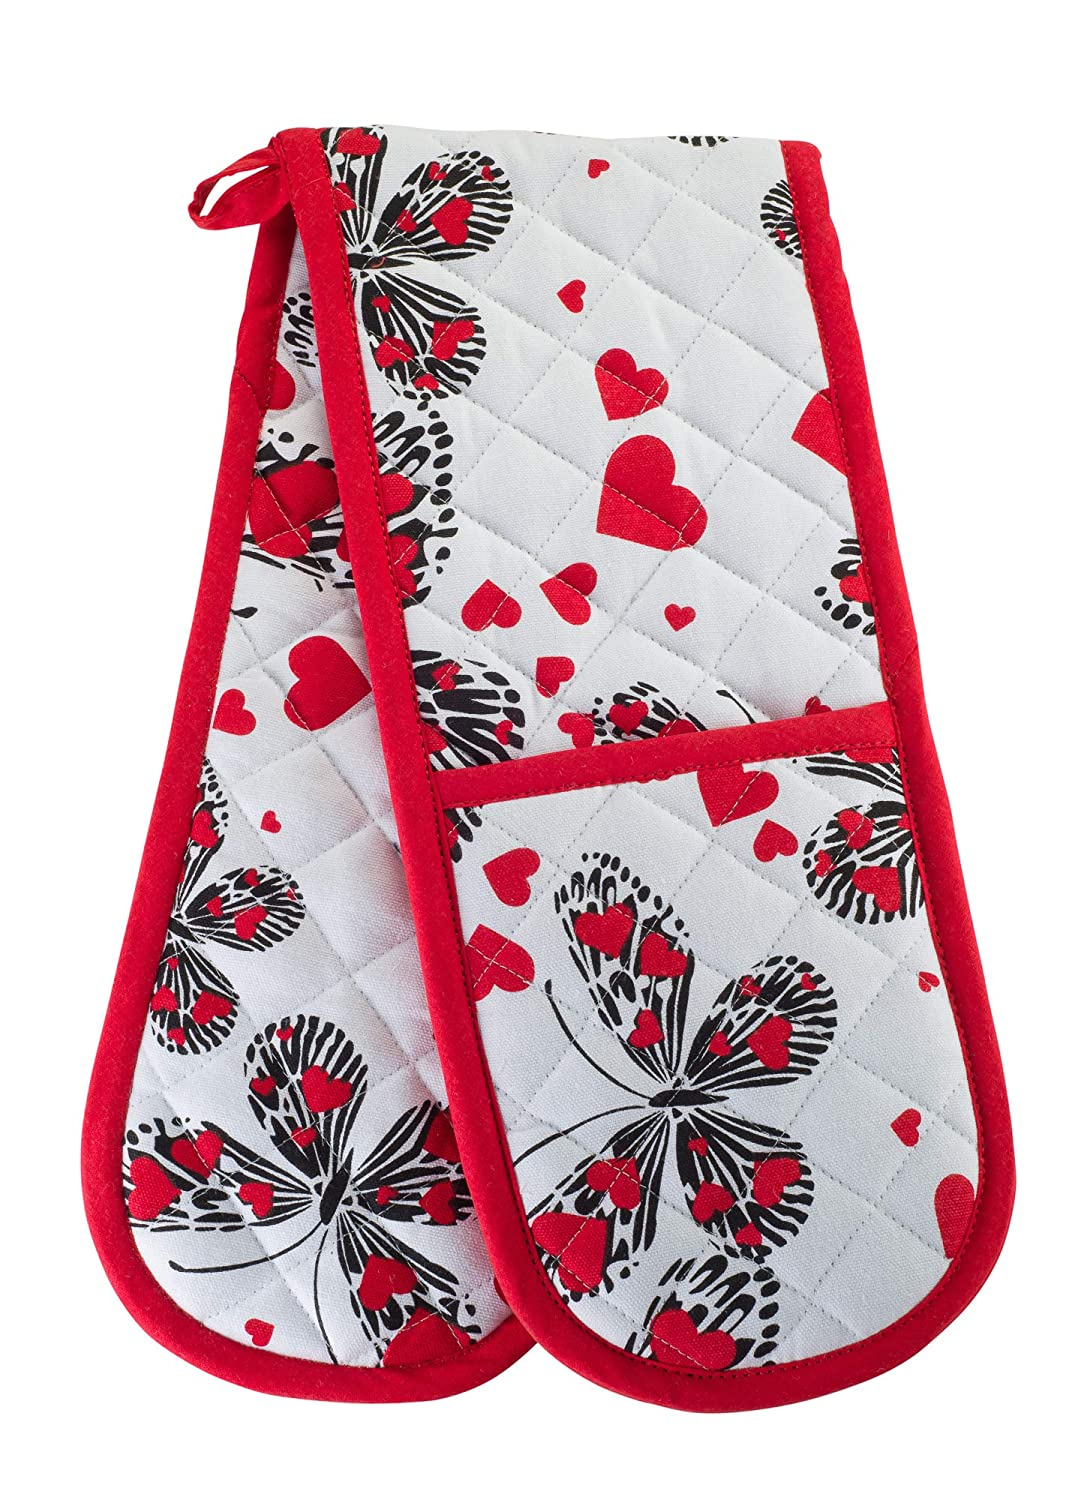 KreativeKitchenry Smart Home, Fun Butterflies & Hearts, 1 Piece, Long Double Oven Mitts Gloves, Heat Resistant, 100% Cotton, Extra Thick, Quilted